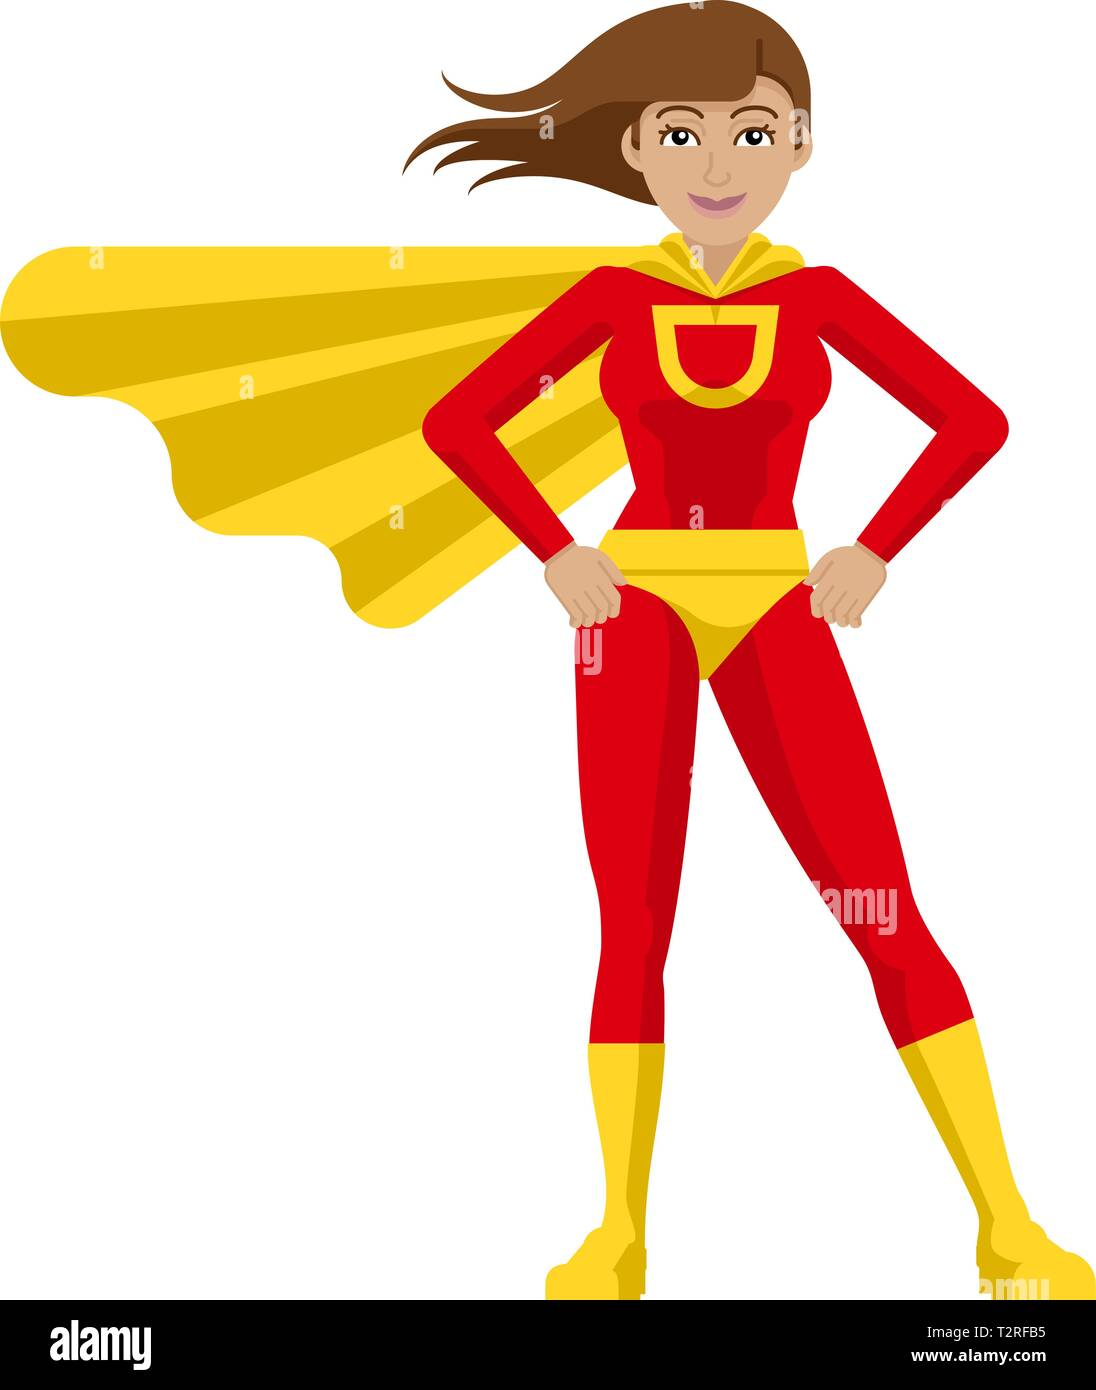 A superhero cartoon mascot woman in her red and yellow super hero costume compete with cape in a flat modern cartoon style - Stock Image